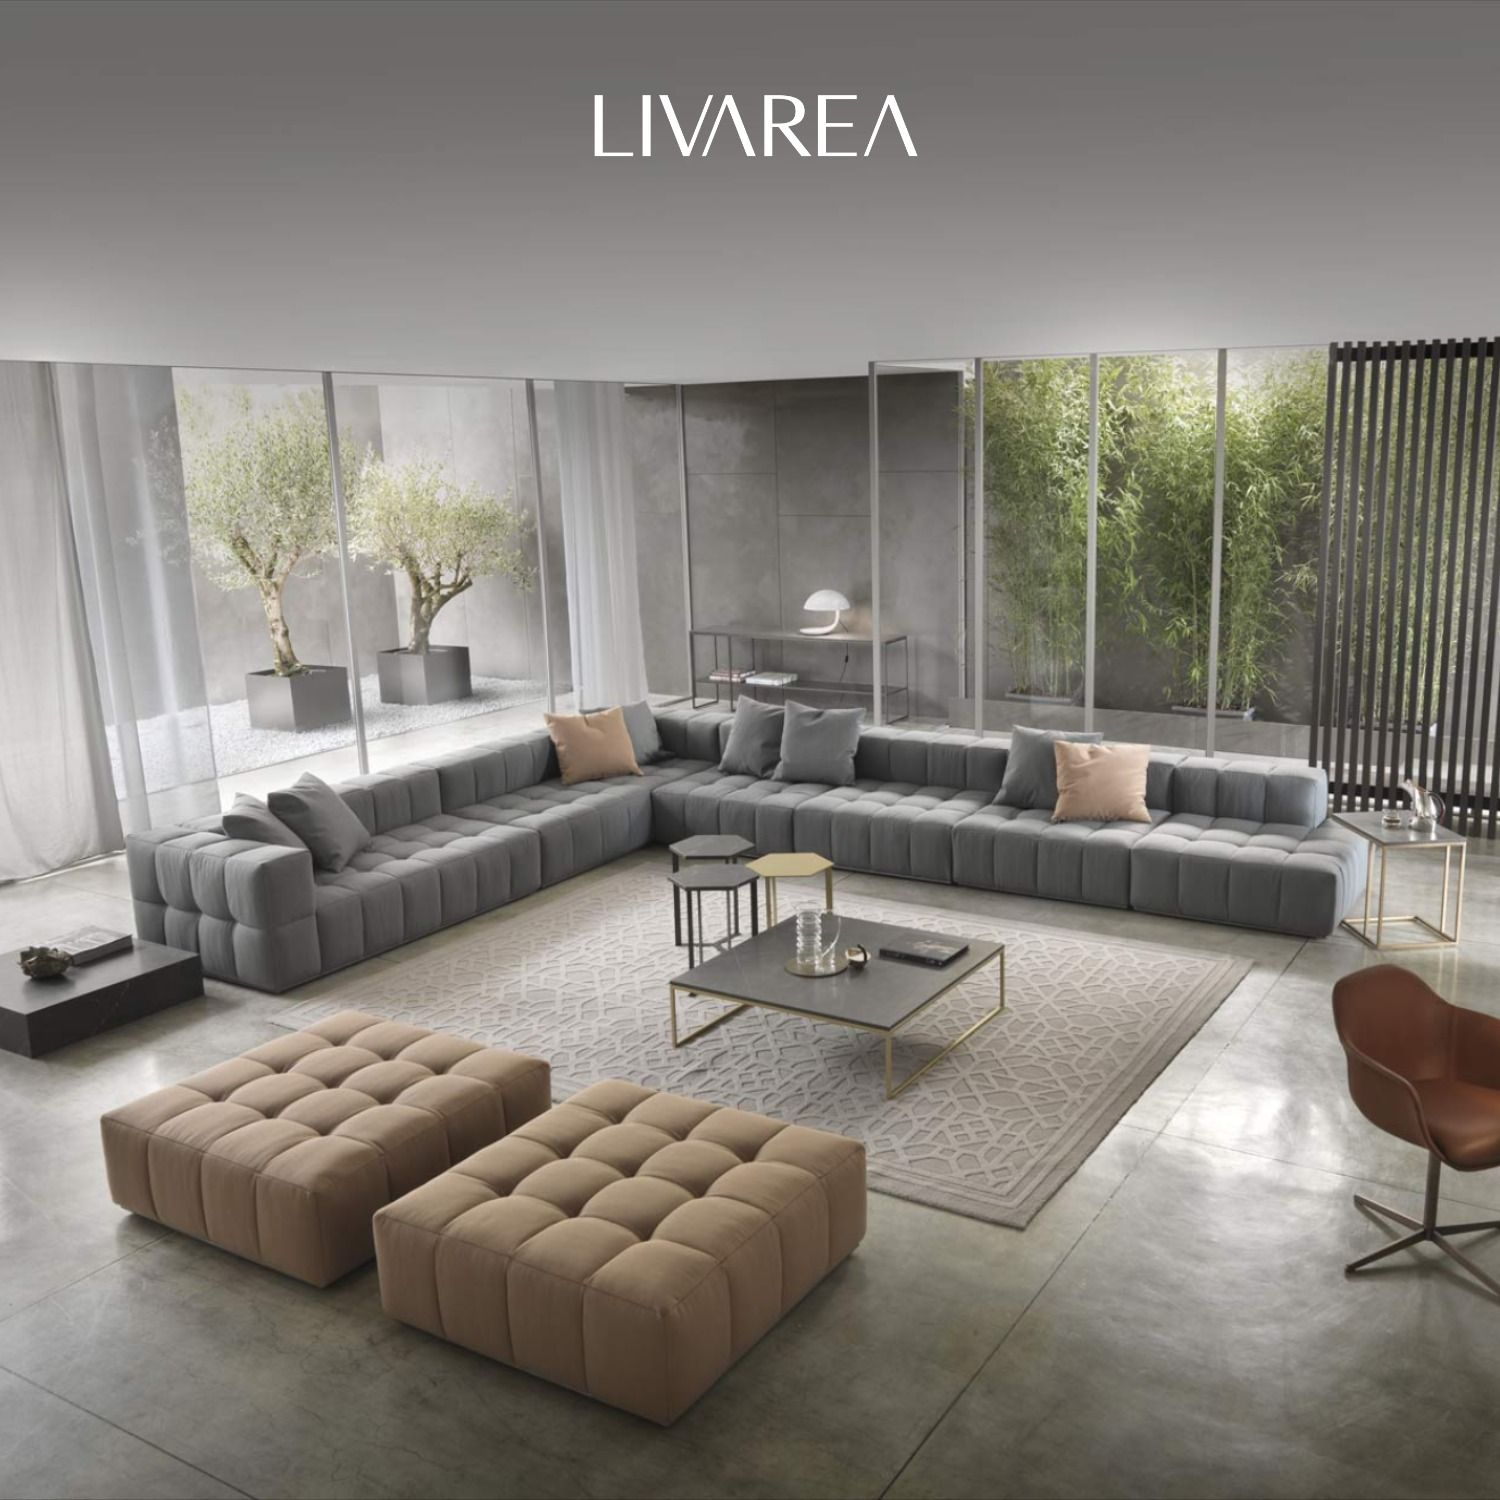 Marelli Lounge Sofa Andy in 4  Sofa design, Lounge design